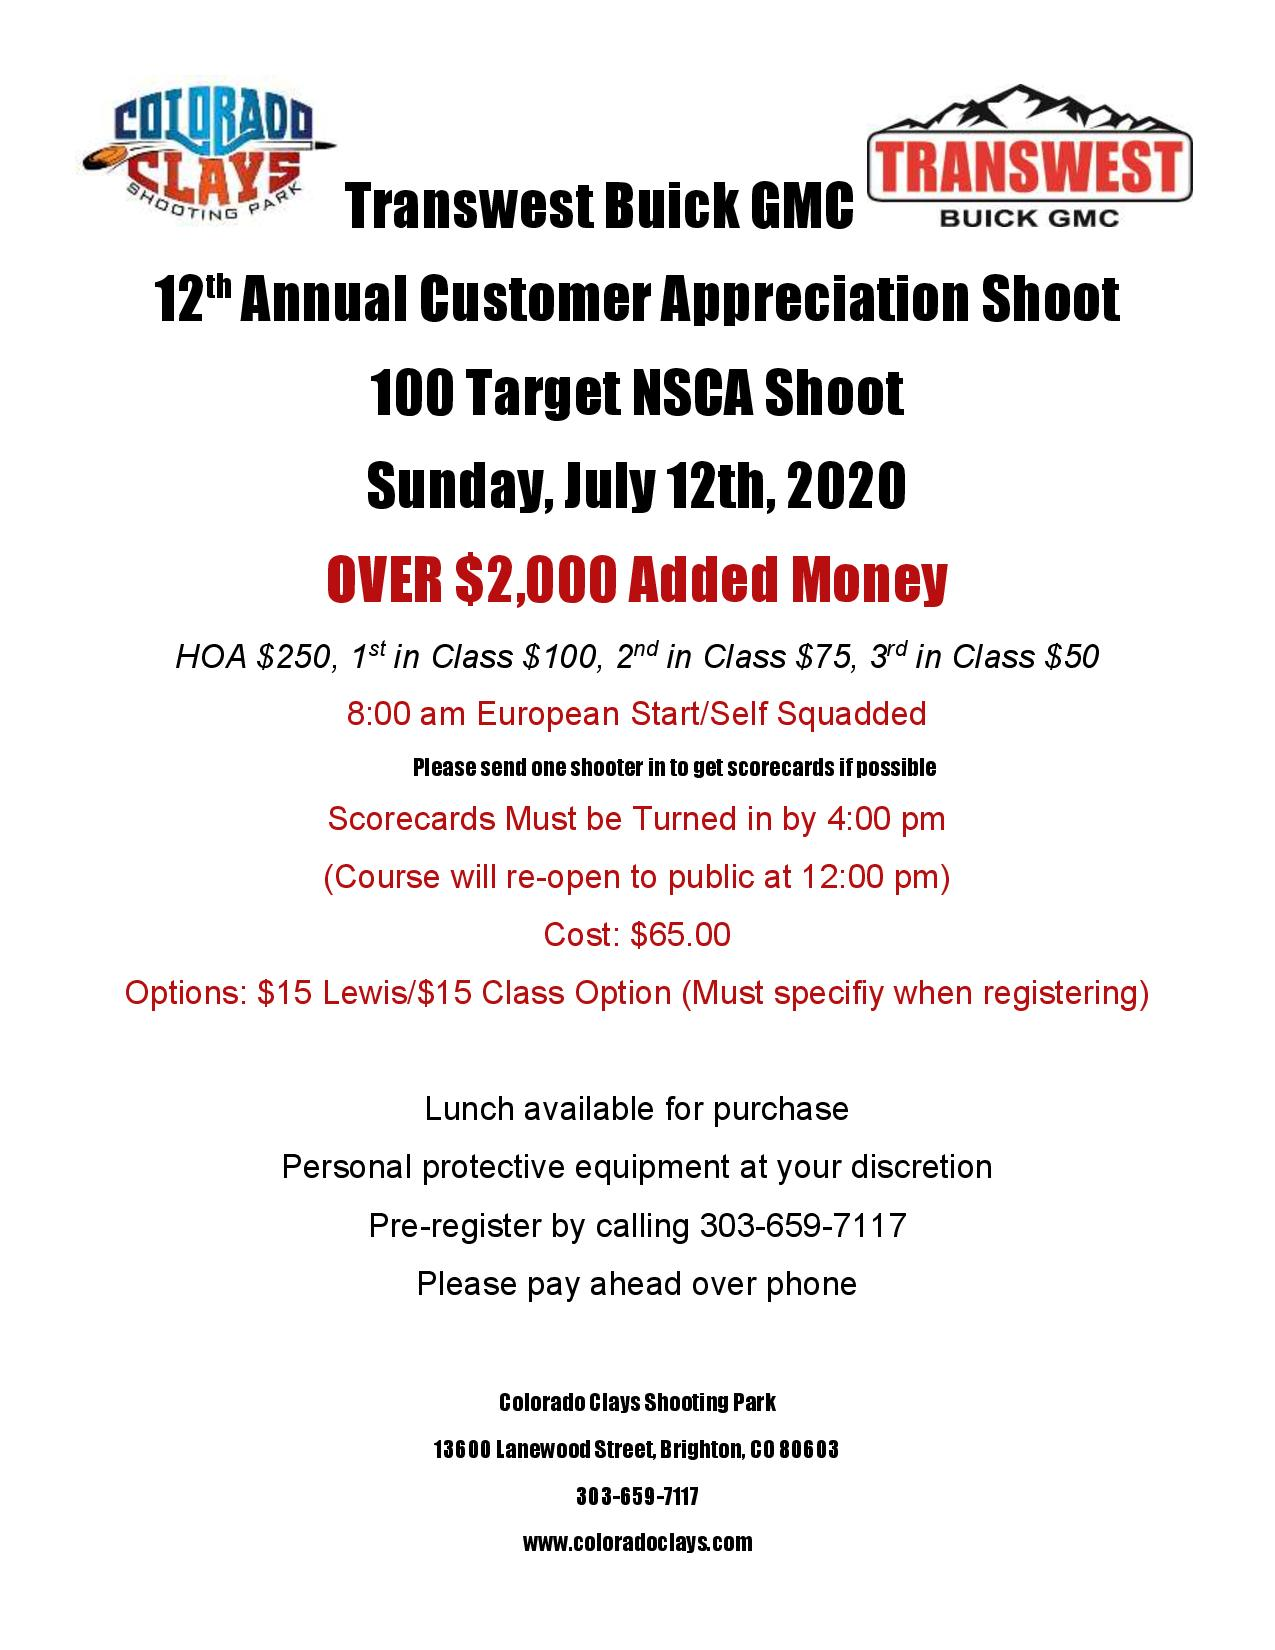 Transwest 100 Target $2,000 Added Money NSCA Shoot